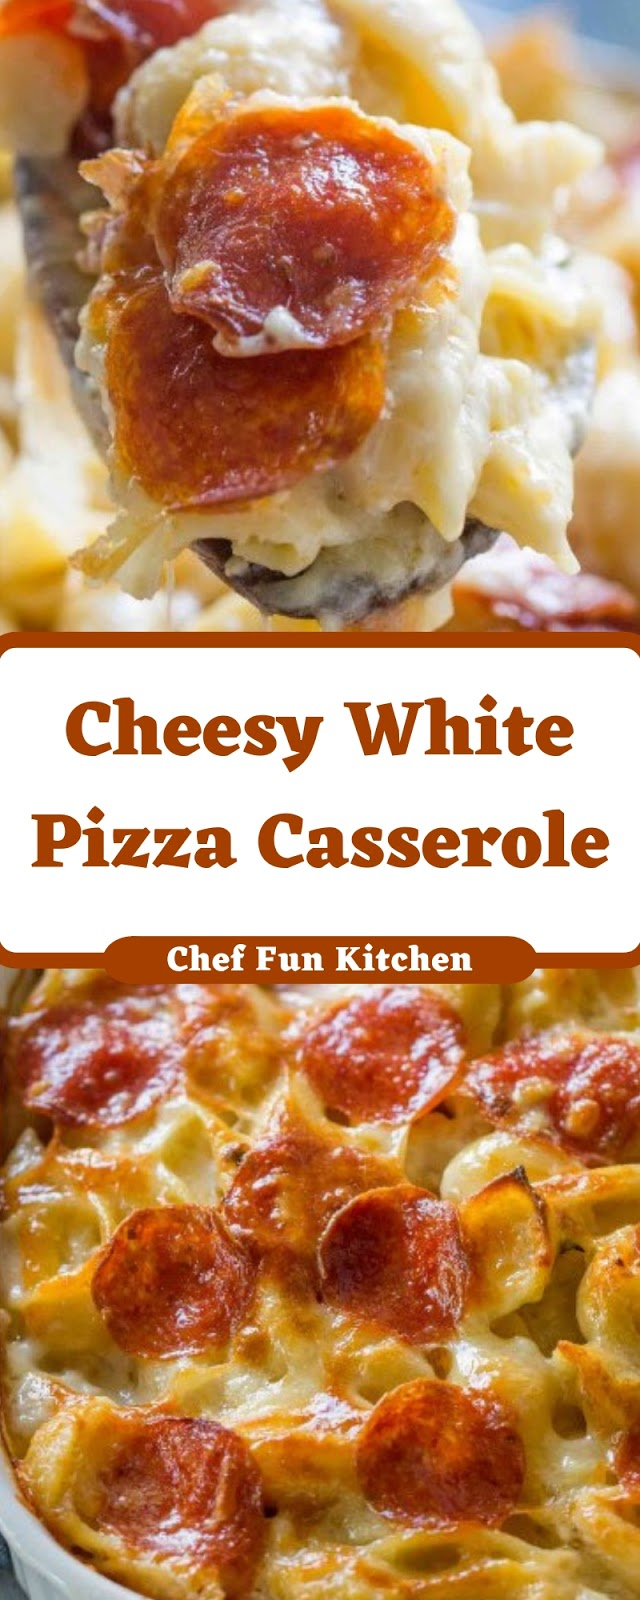 Cheesy White Pizza Casserole